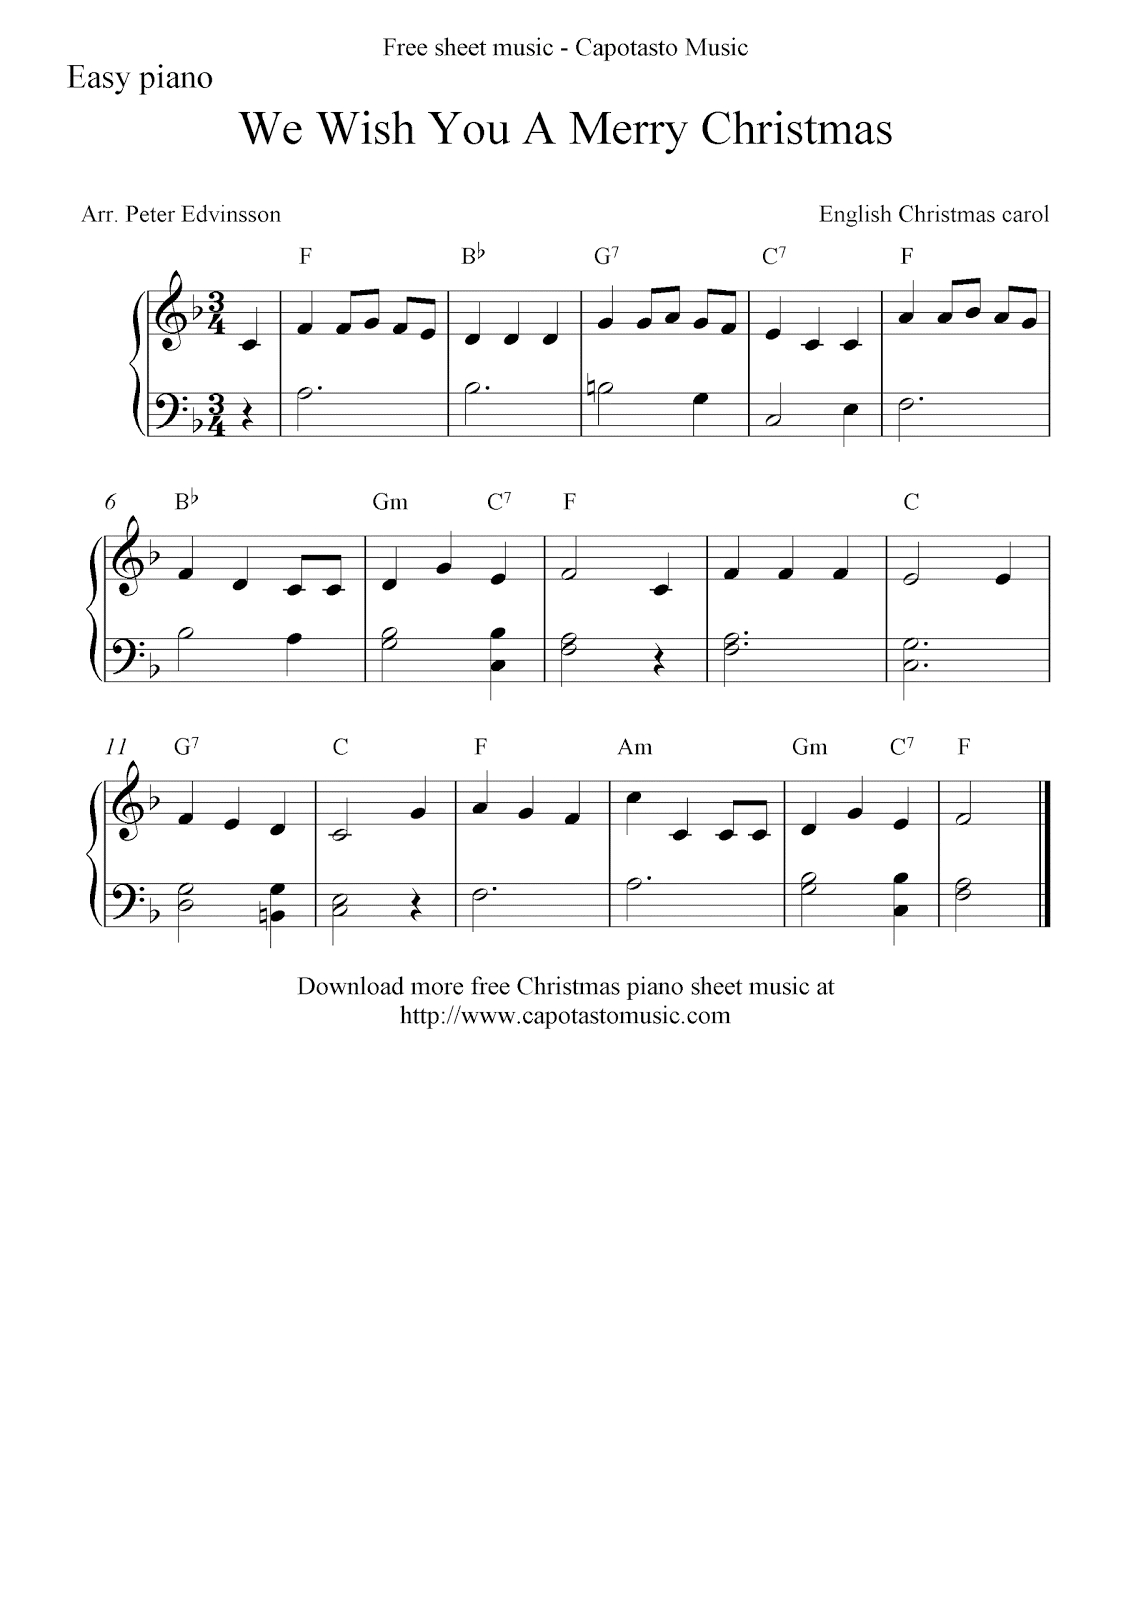 Free Christmas Sheet Music For Easy Piano, We Wish You A Merry Christmas - Christmas Piano Sheet Music Easy Free Printable